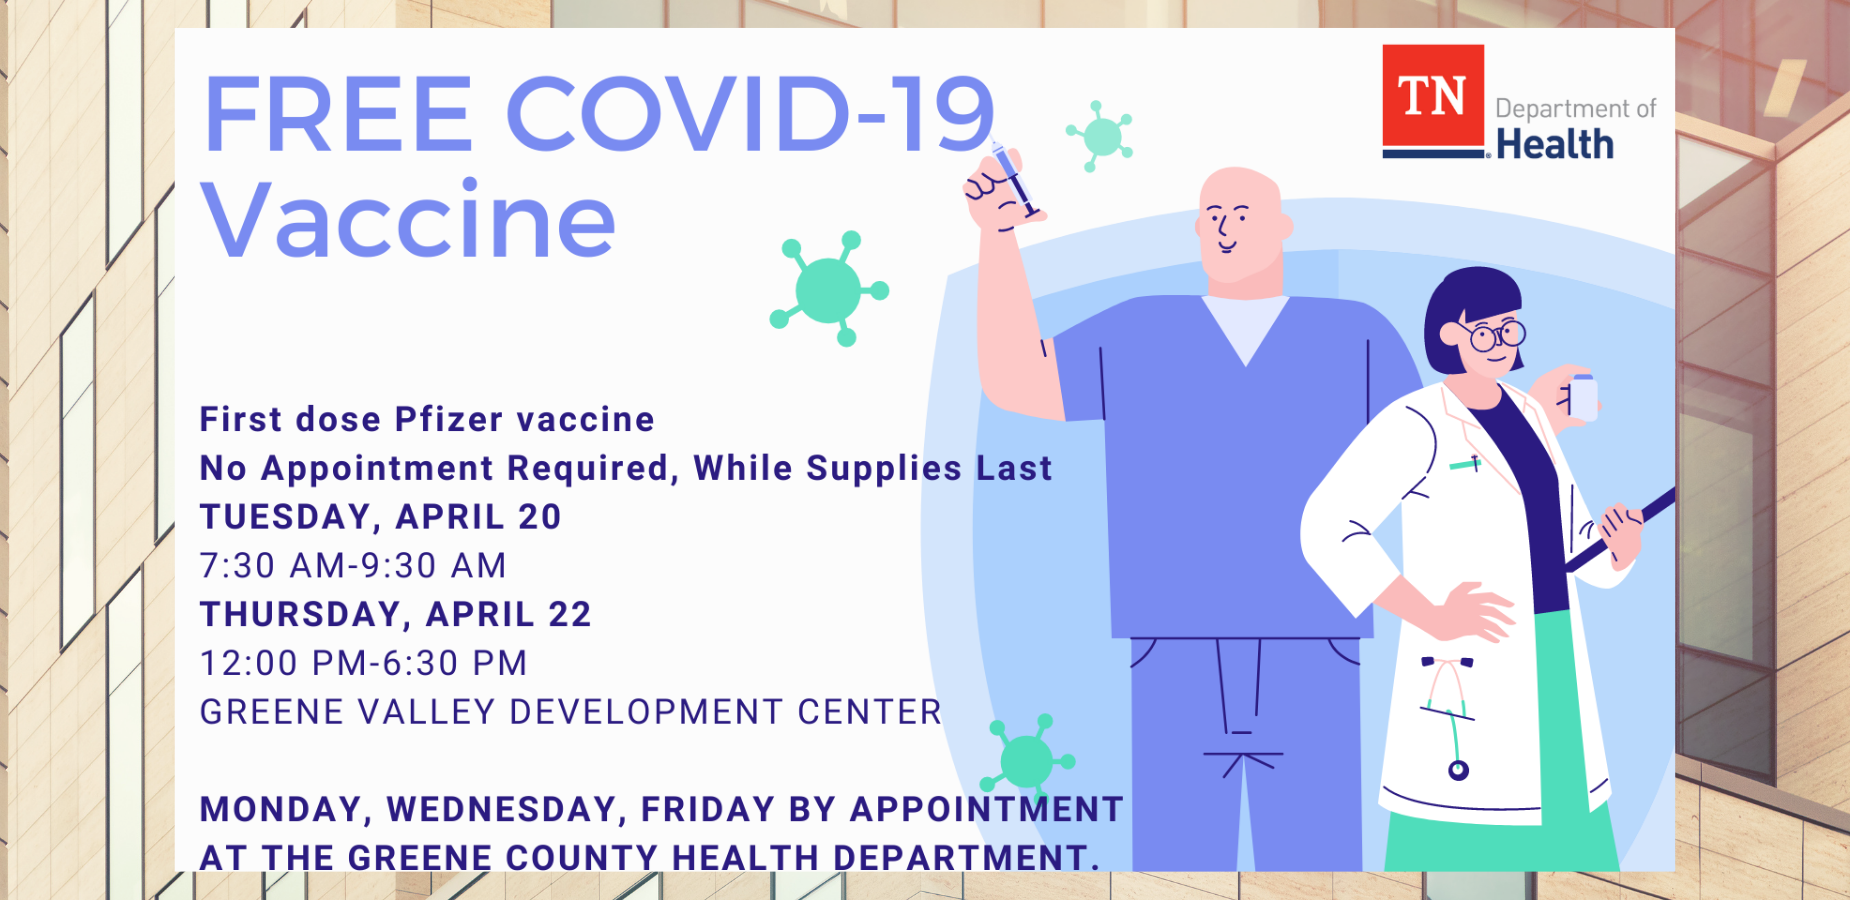 Free Covid-19 Vaccinations Available at these sites.